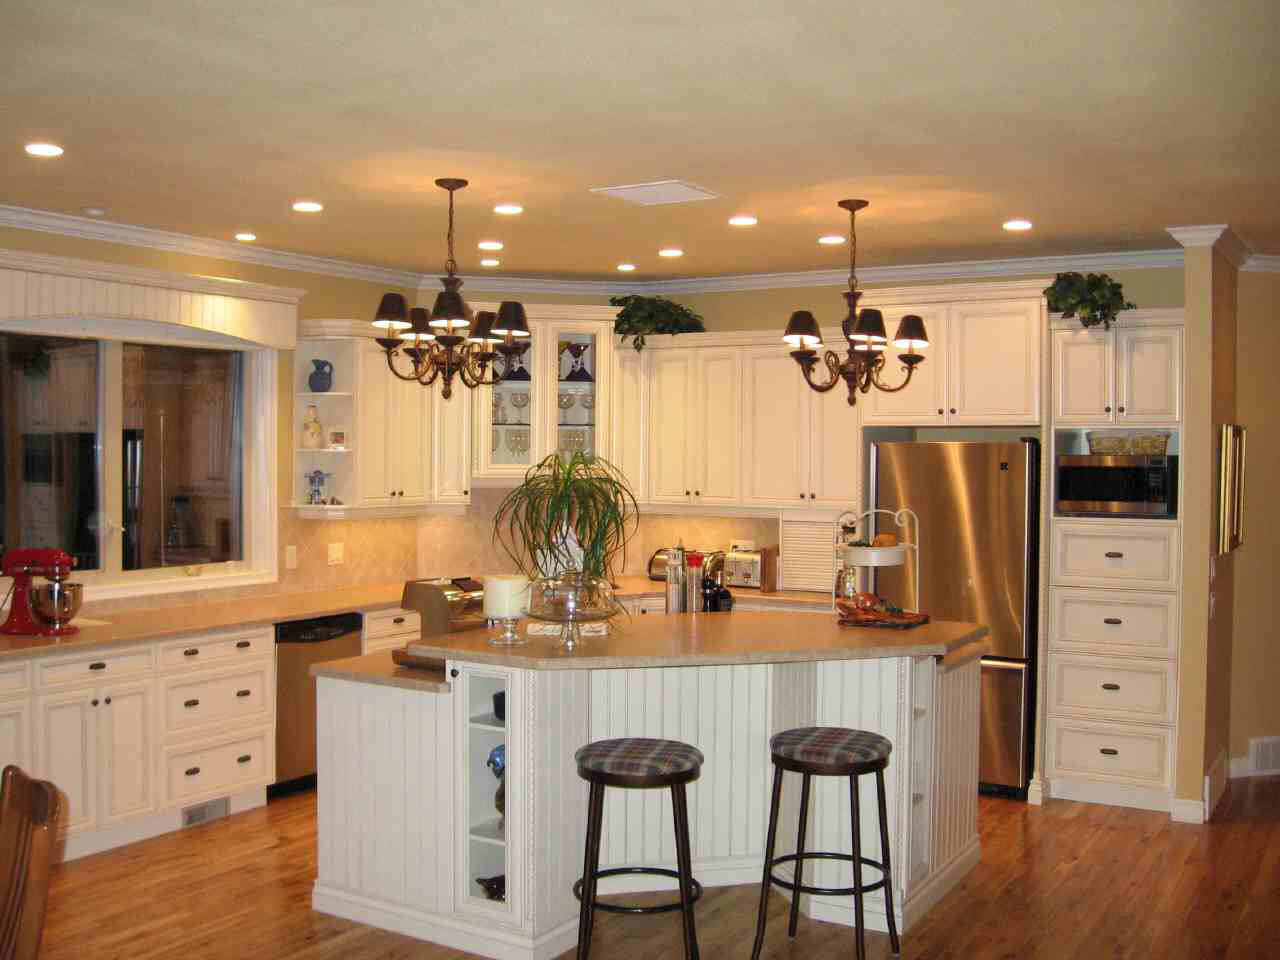 Kitchen Remodels Ideas Amazon Faucets Room Small Designs